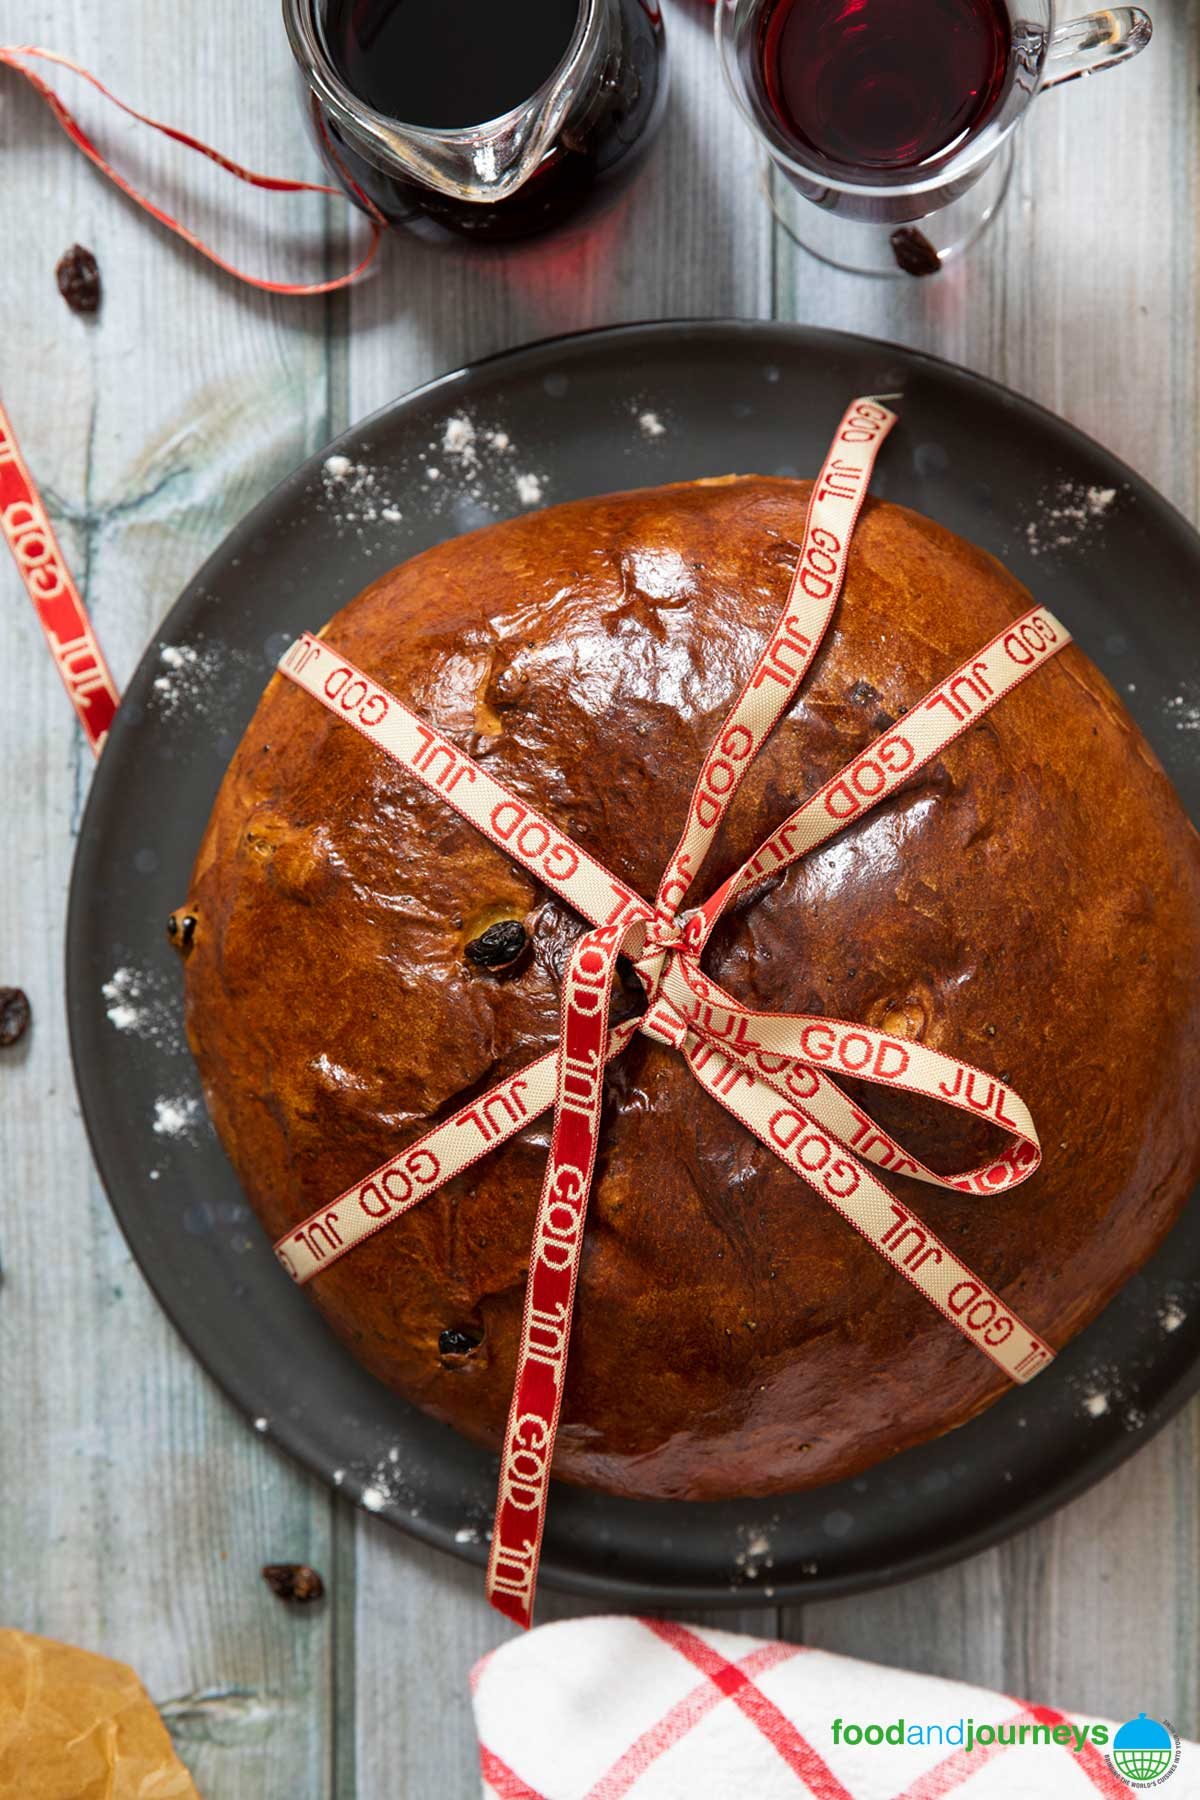 An overhead shot of a freshly baked Norwegian Christmas Cake, with a christmas ribbon tied around it, ready for gifting.